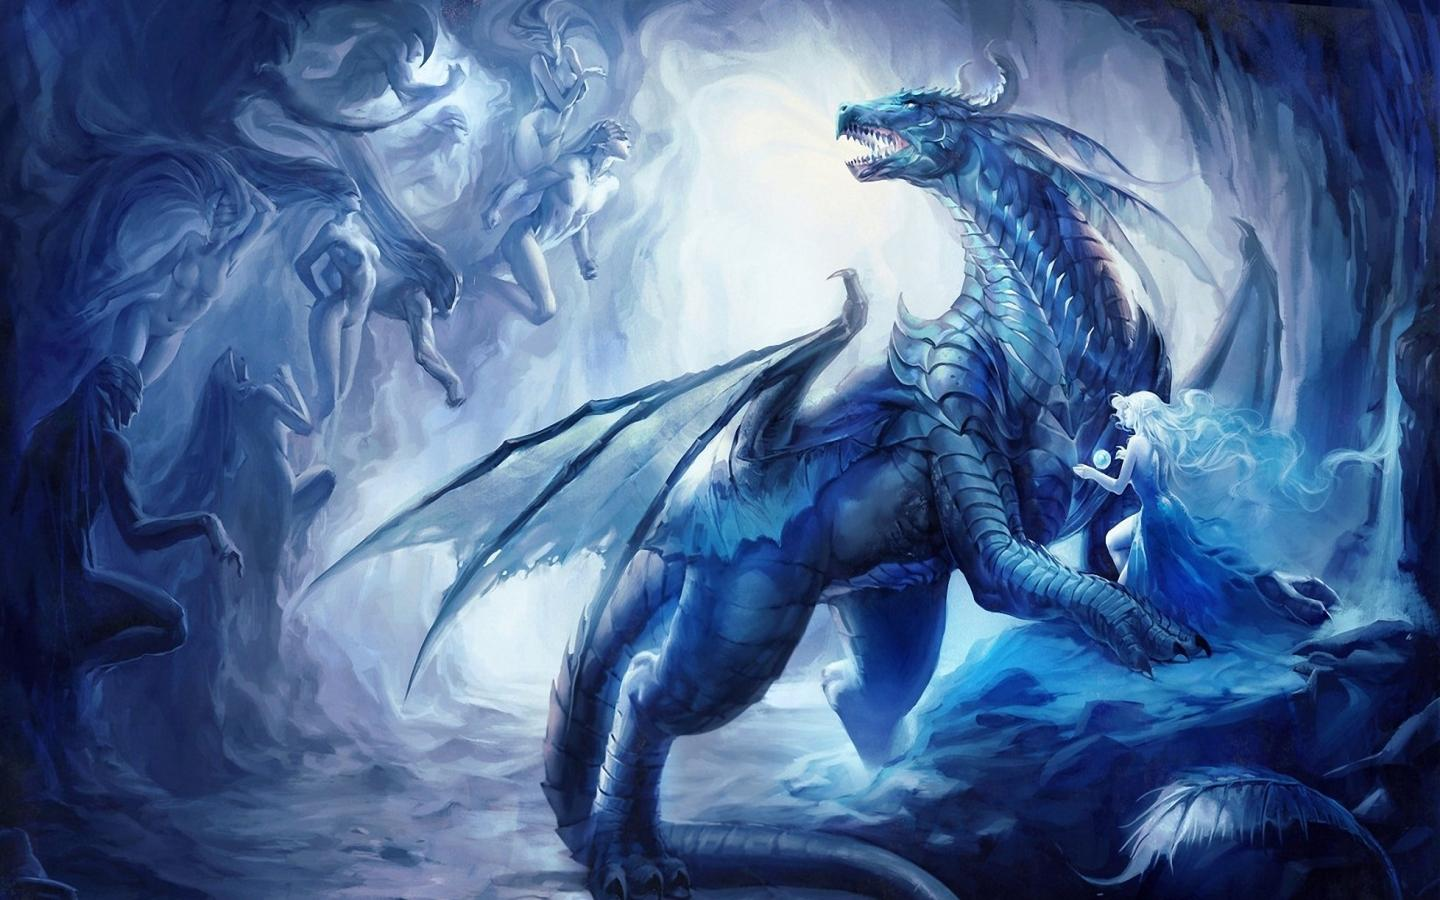 Amazing Fantasy Dragon High Resolution Picture 7439 Wallpaper 1440x900